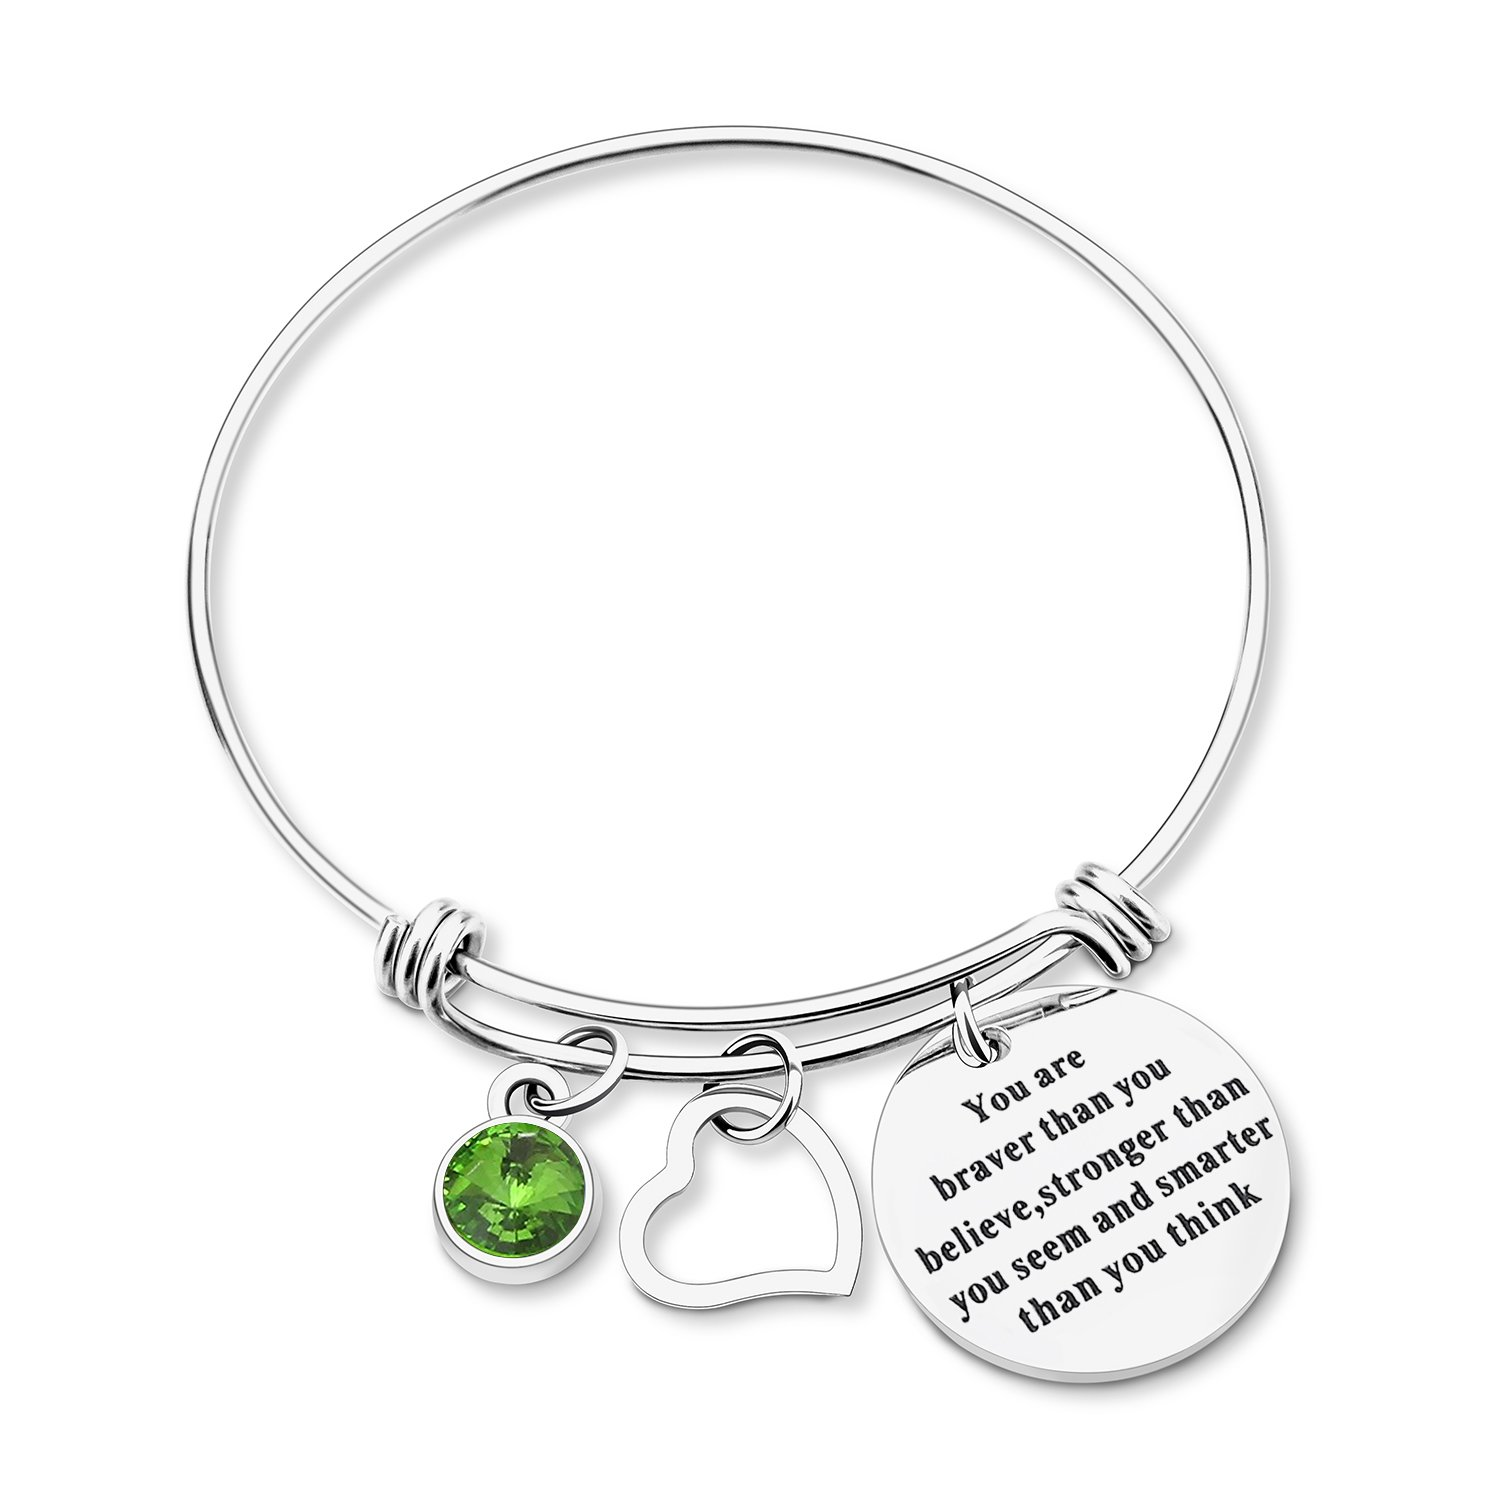 Yoomarket ''You are braver than you believe Inspirational Birthstone and Heart Adjustable Charm Bangle Bracelet Stainless Steel Womens Jewelry Birthday Girls Gifts(08-Aug.-Peridot) by Yoomarket (Image #3)